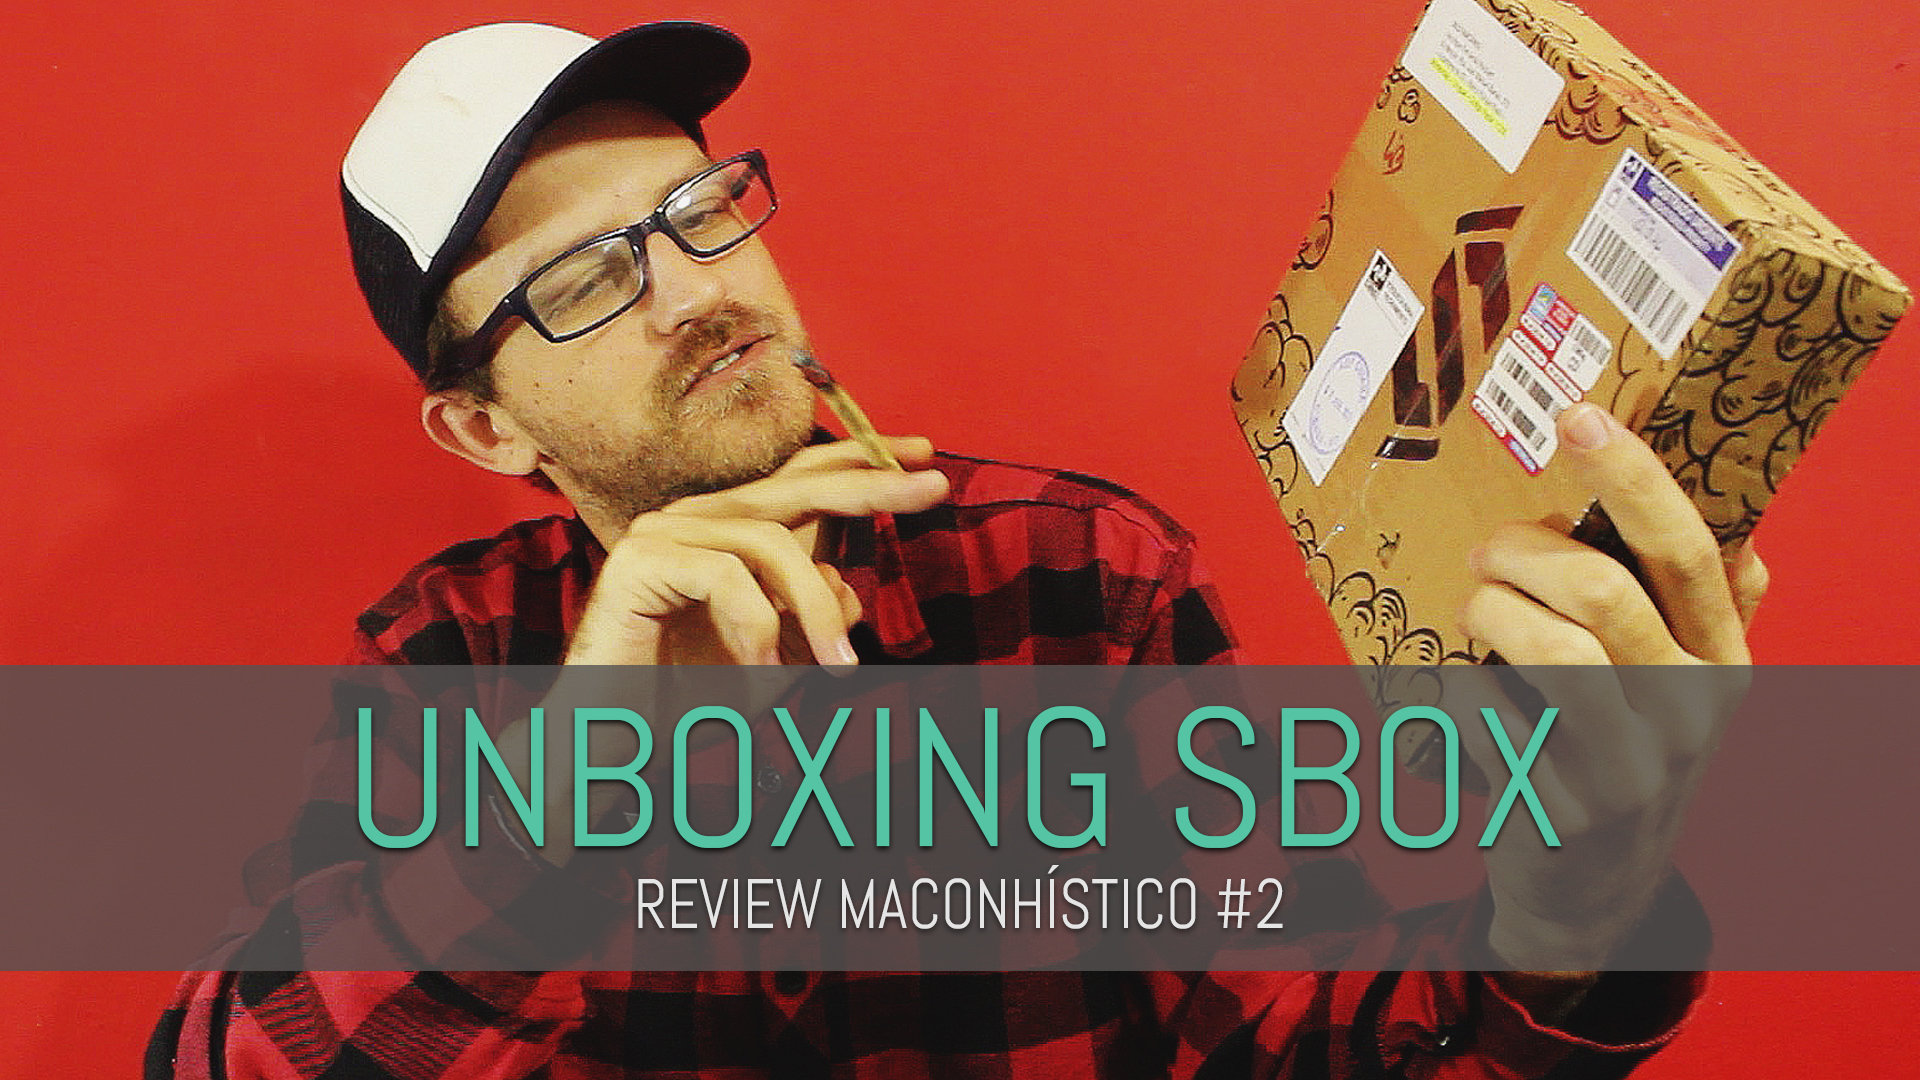 CAPA UNBOXING SBOX REVIEW MACONHÍSTICO 2 UNBOXING SMOKER BOX | REVIEW MACONHÍSTICO #2